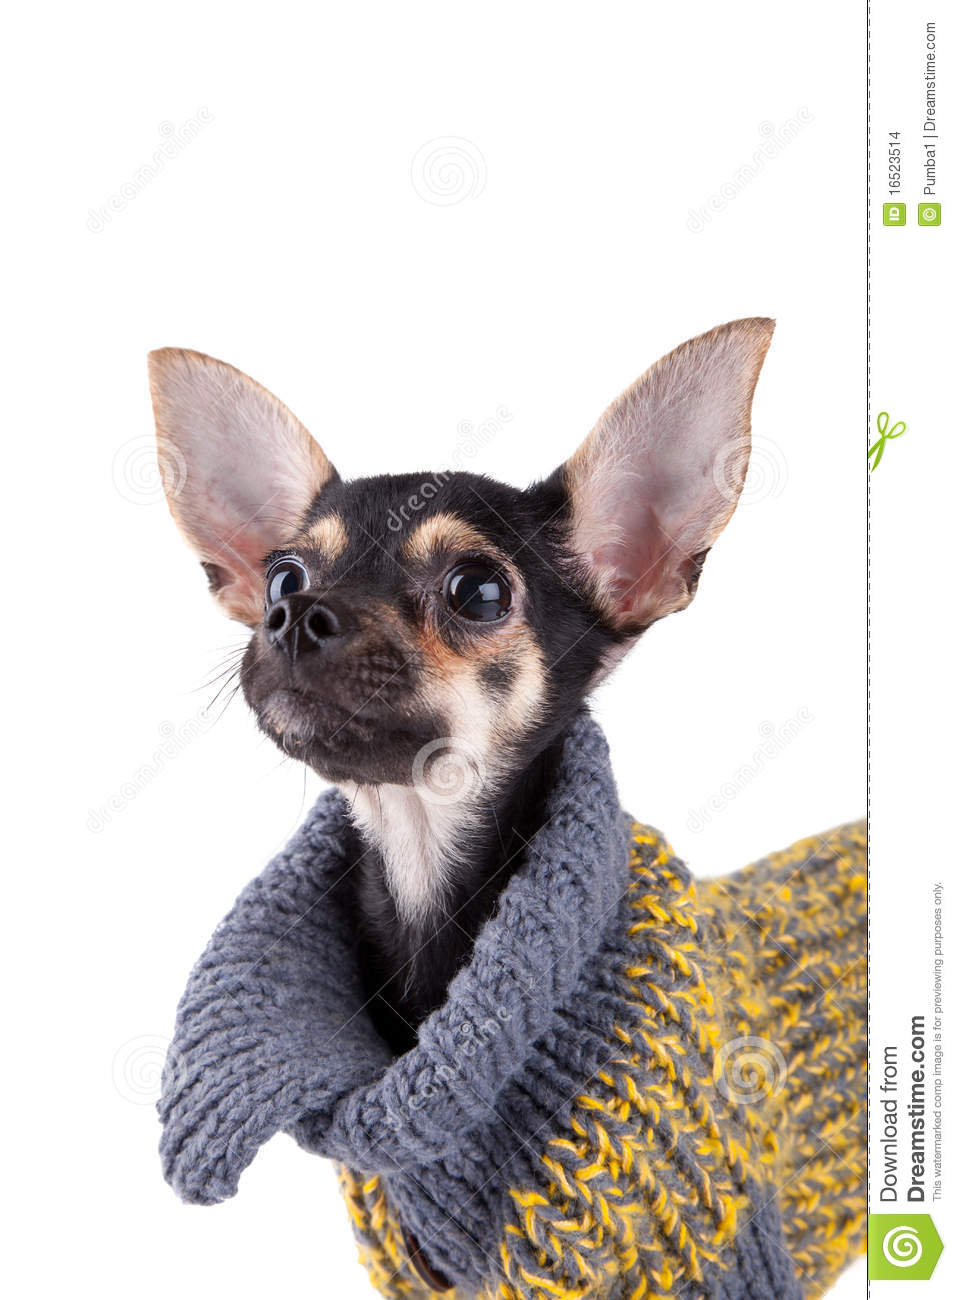 Toy Terrier Small Dogs : Small dog toy terrier in clothes stock images image